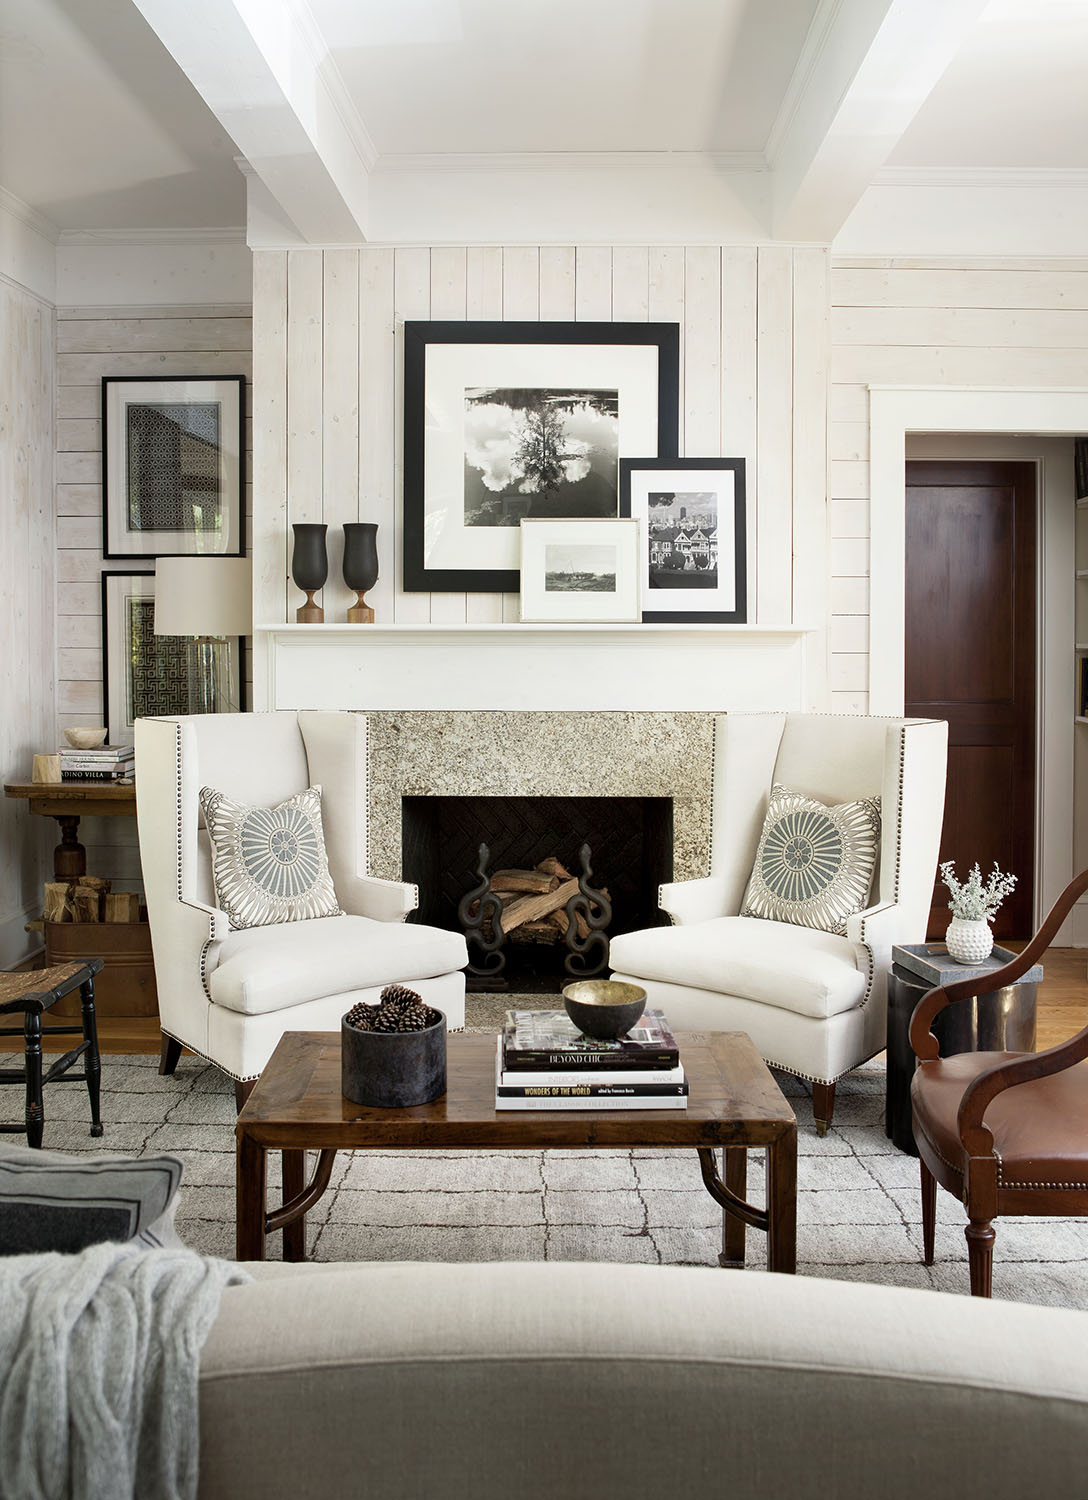 #6: Lake house living room designed by Robert Brown Interior Design. See more of his work here>